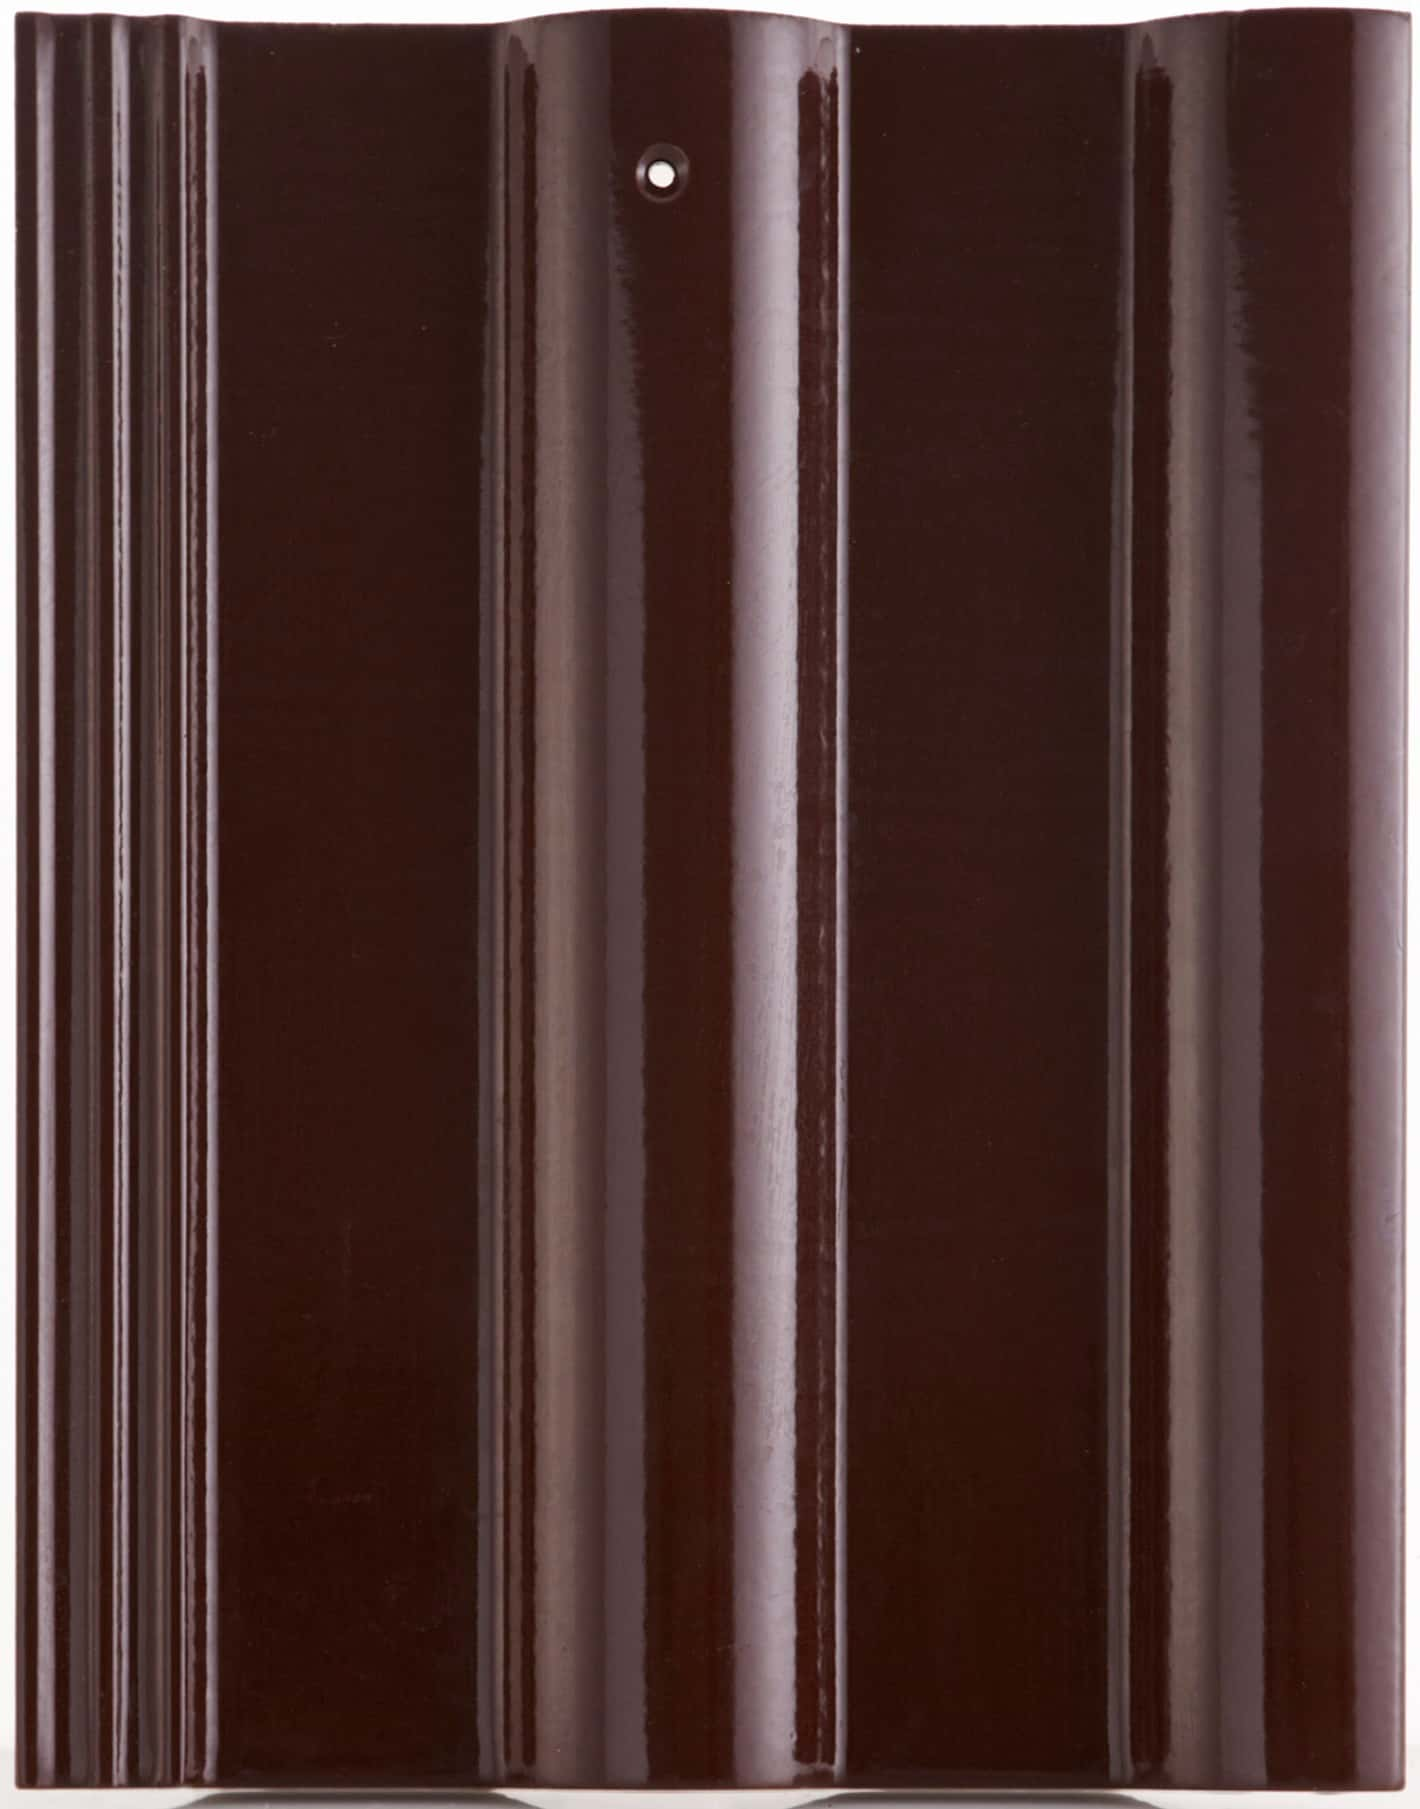 SCG Ceramic Roof Tile - EXCELLA Classic Timber Brown